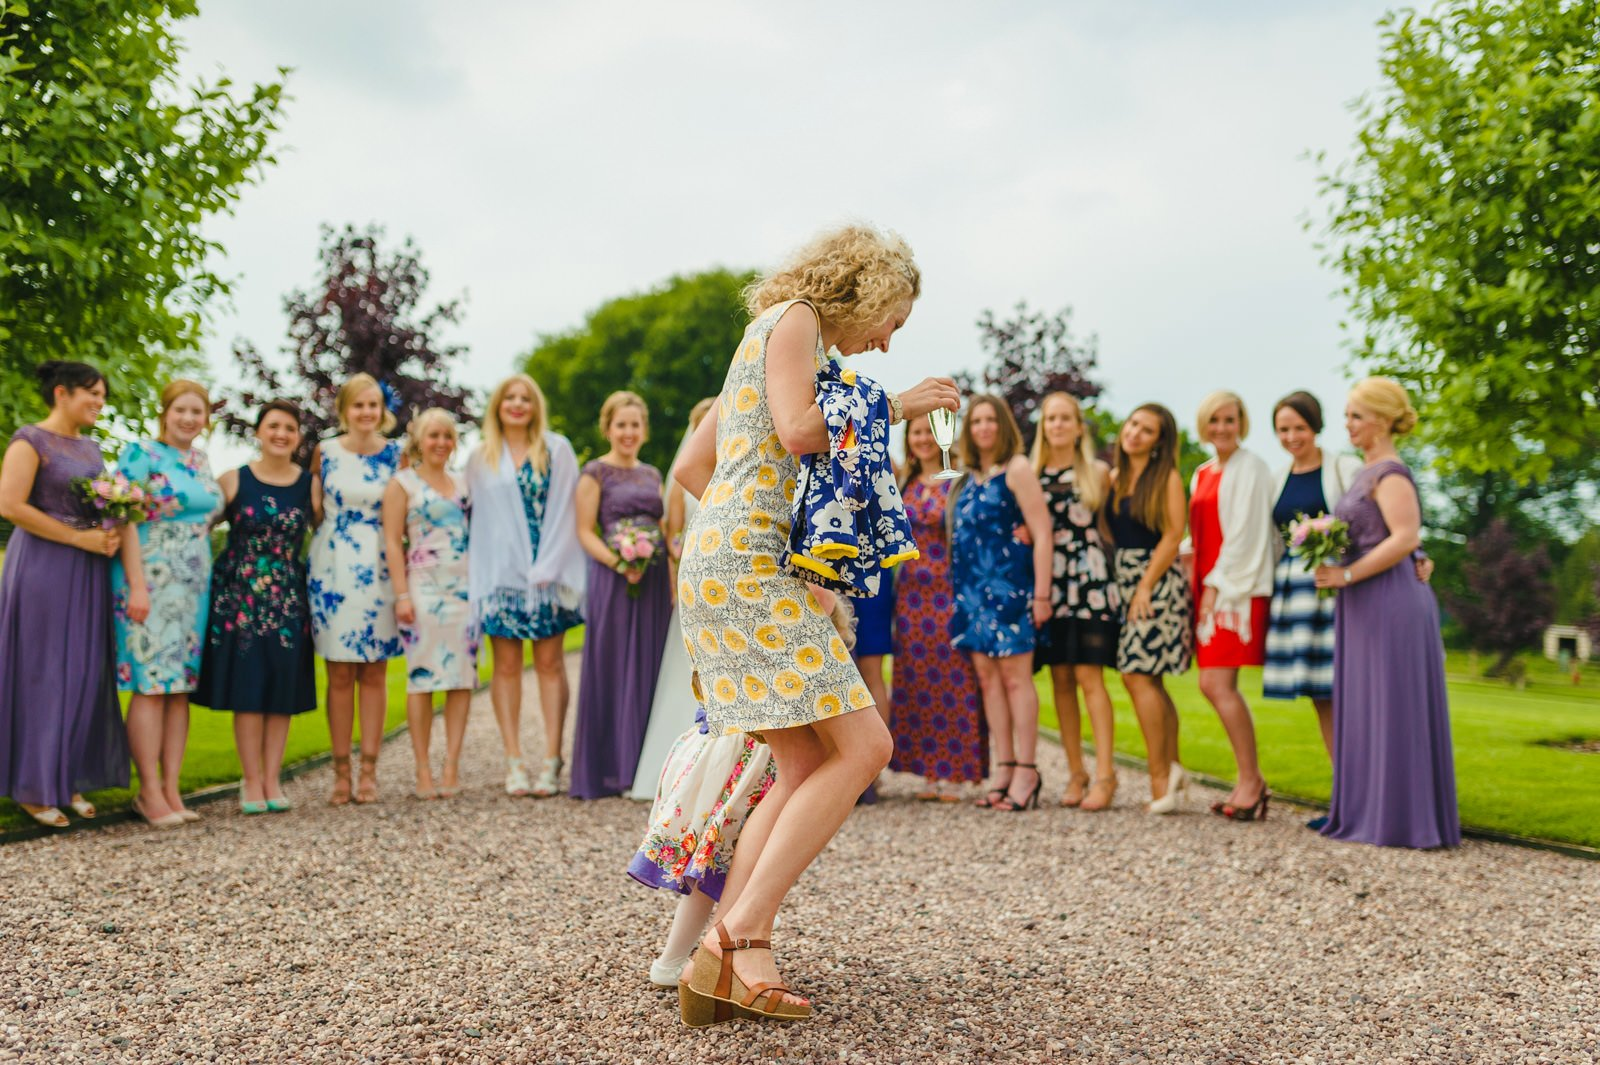 millers of netley wedding 63 - Millers Of Netley wedding, Dorrington, Shrewsbury | Emma + Ben